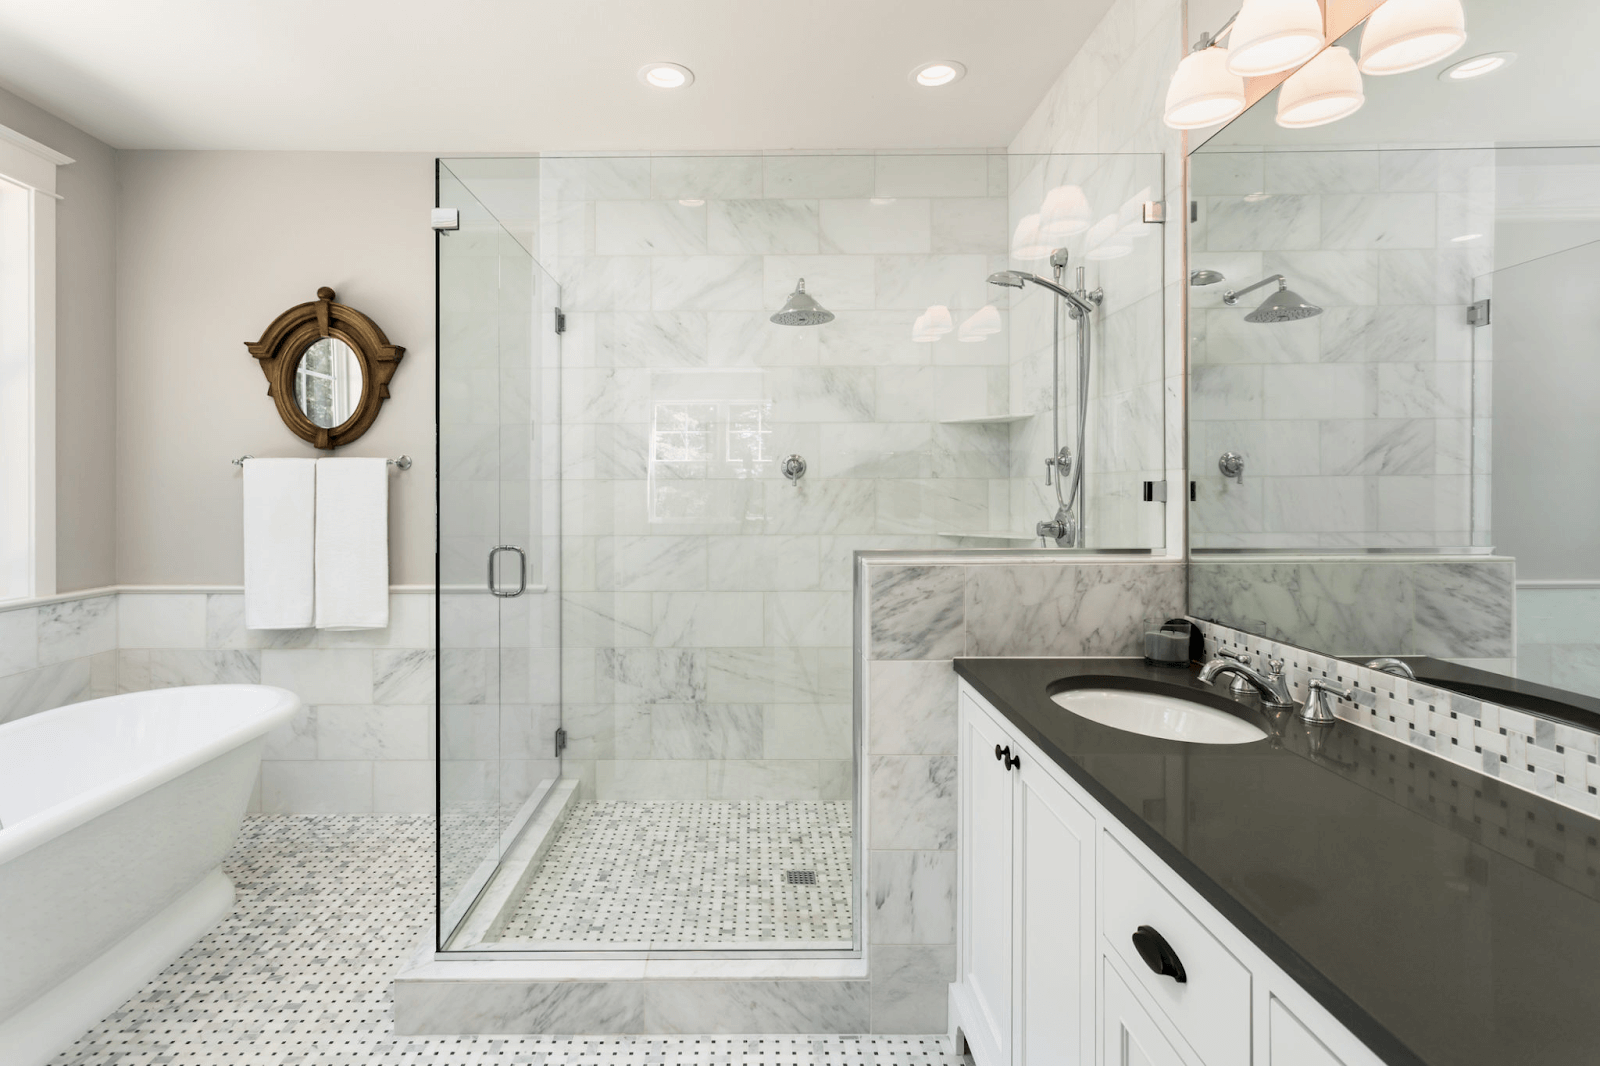 40 Free Shower Tile Ideas (Tips For Choosing Tile) | Why Tile